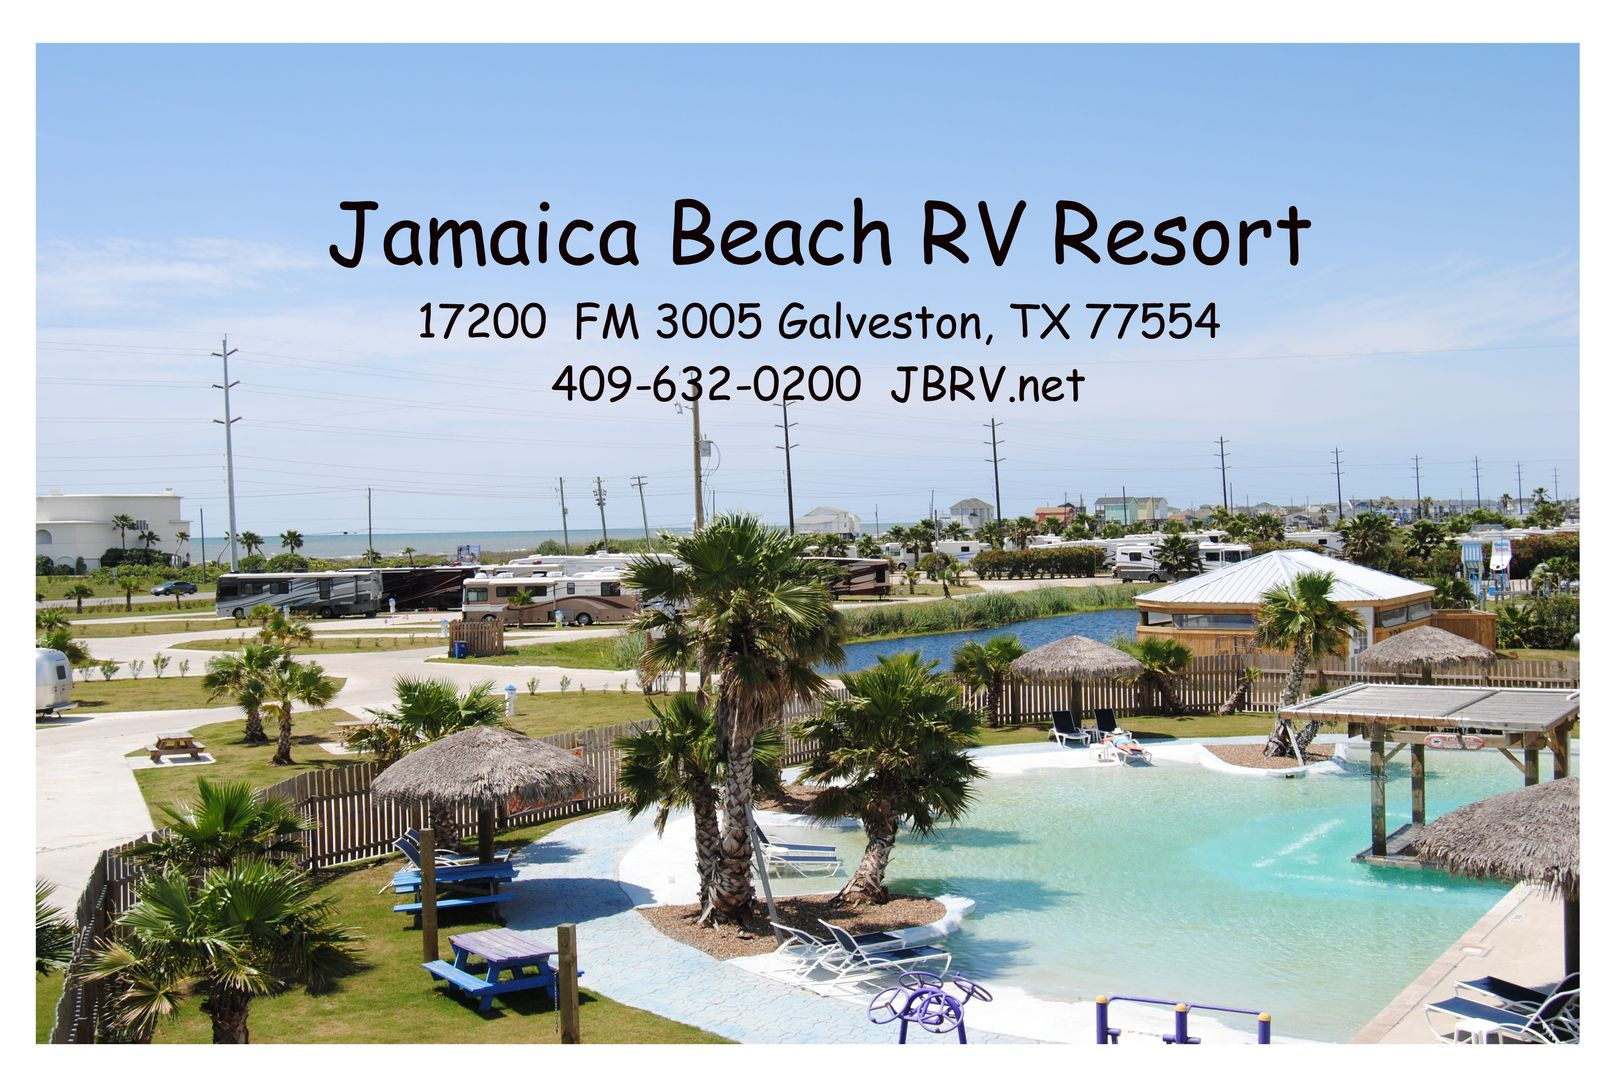 Jamaica Beach Rv Resort Located In Galveston Texas Is The Highest Rated Campground On Island Tx With Some Of Best Rates